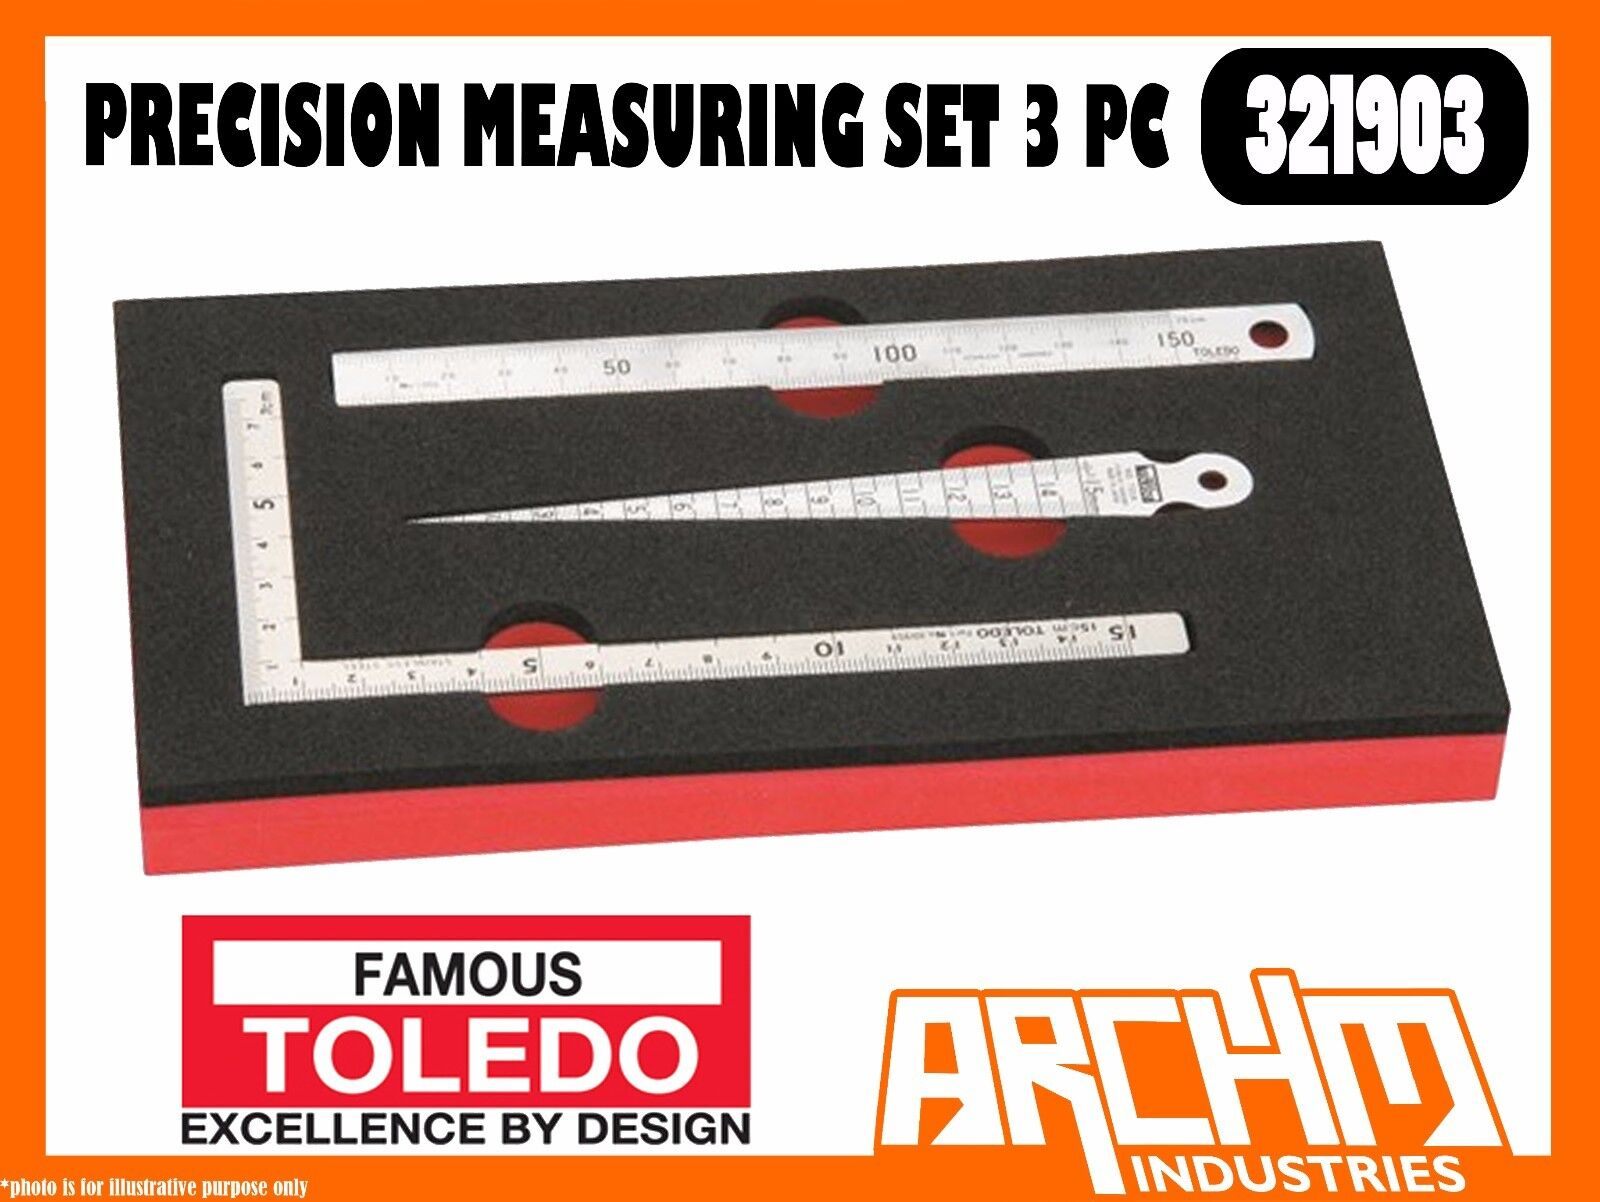 TOLEDO 321903 - PRECISION MEASURING SET - 3 PC - TAPER GAUGE MINI SQUARE RULE